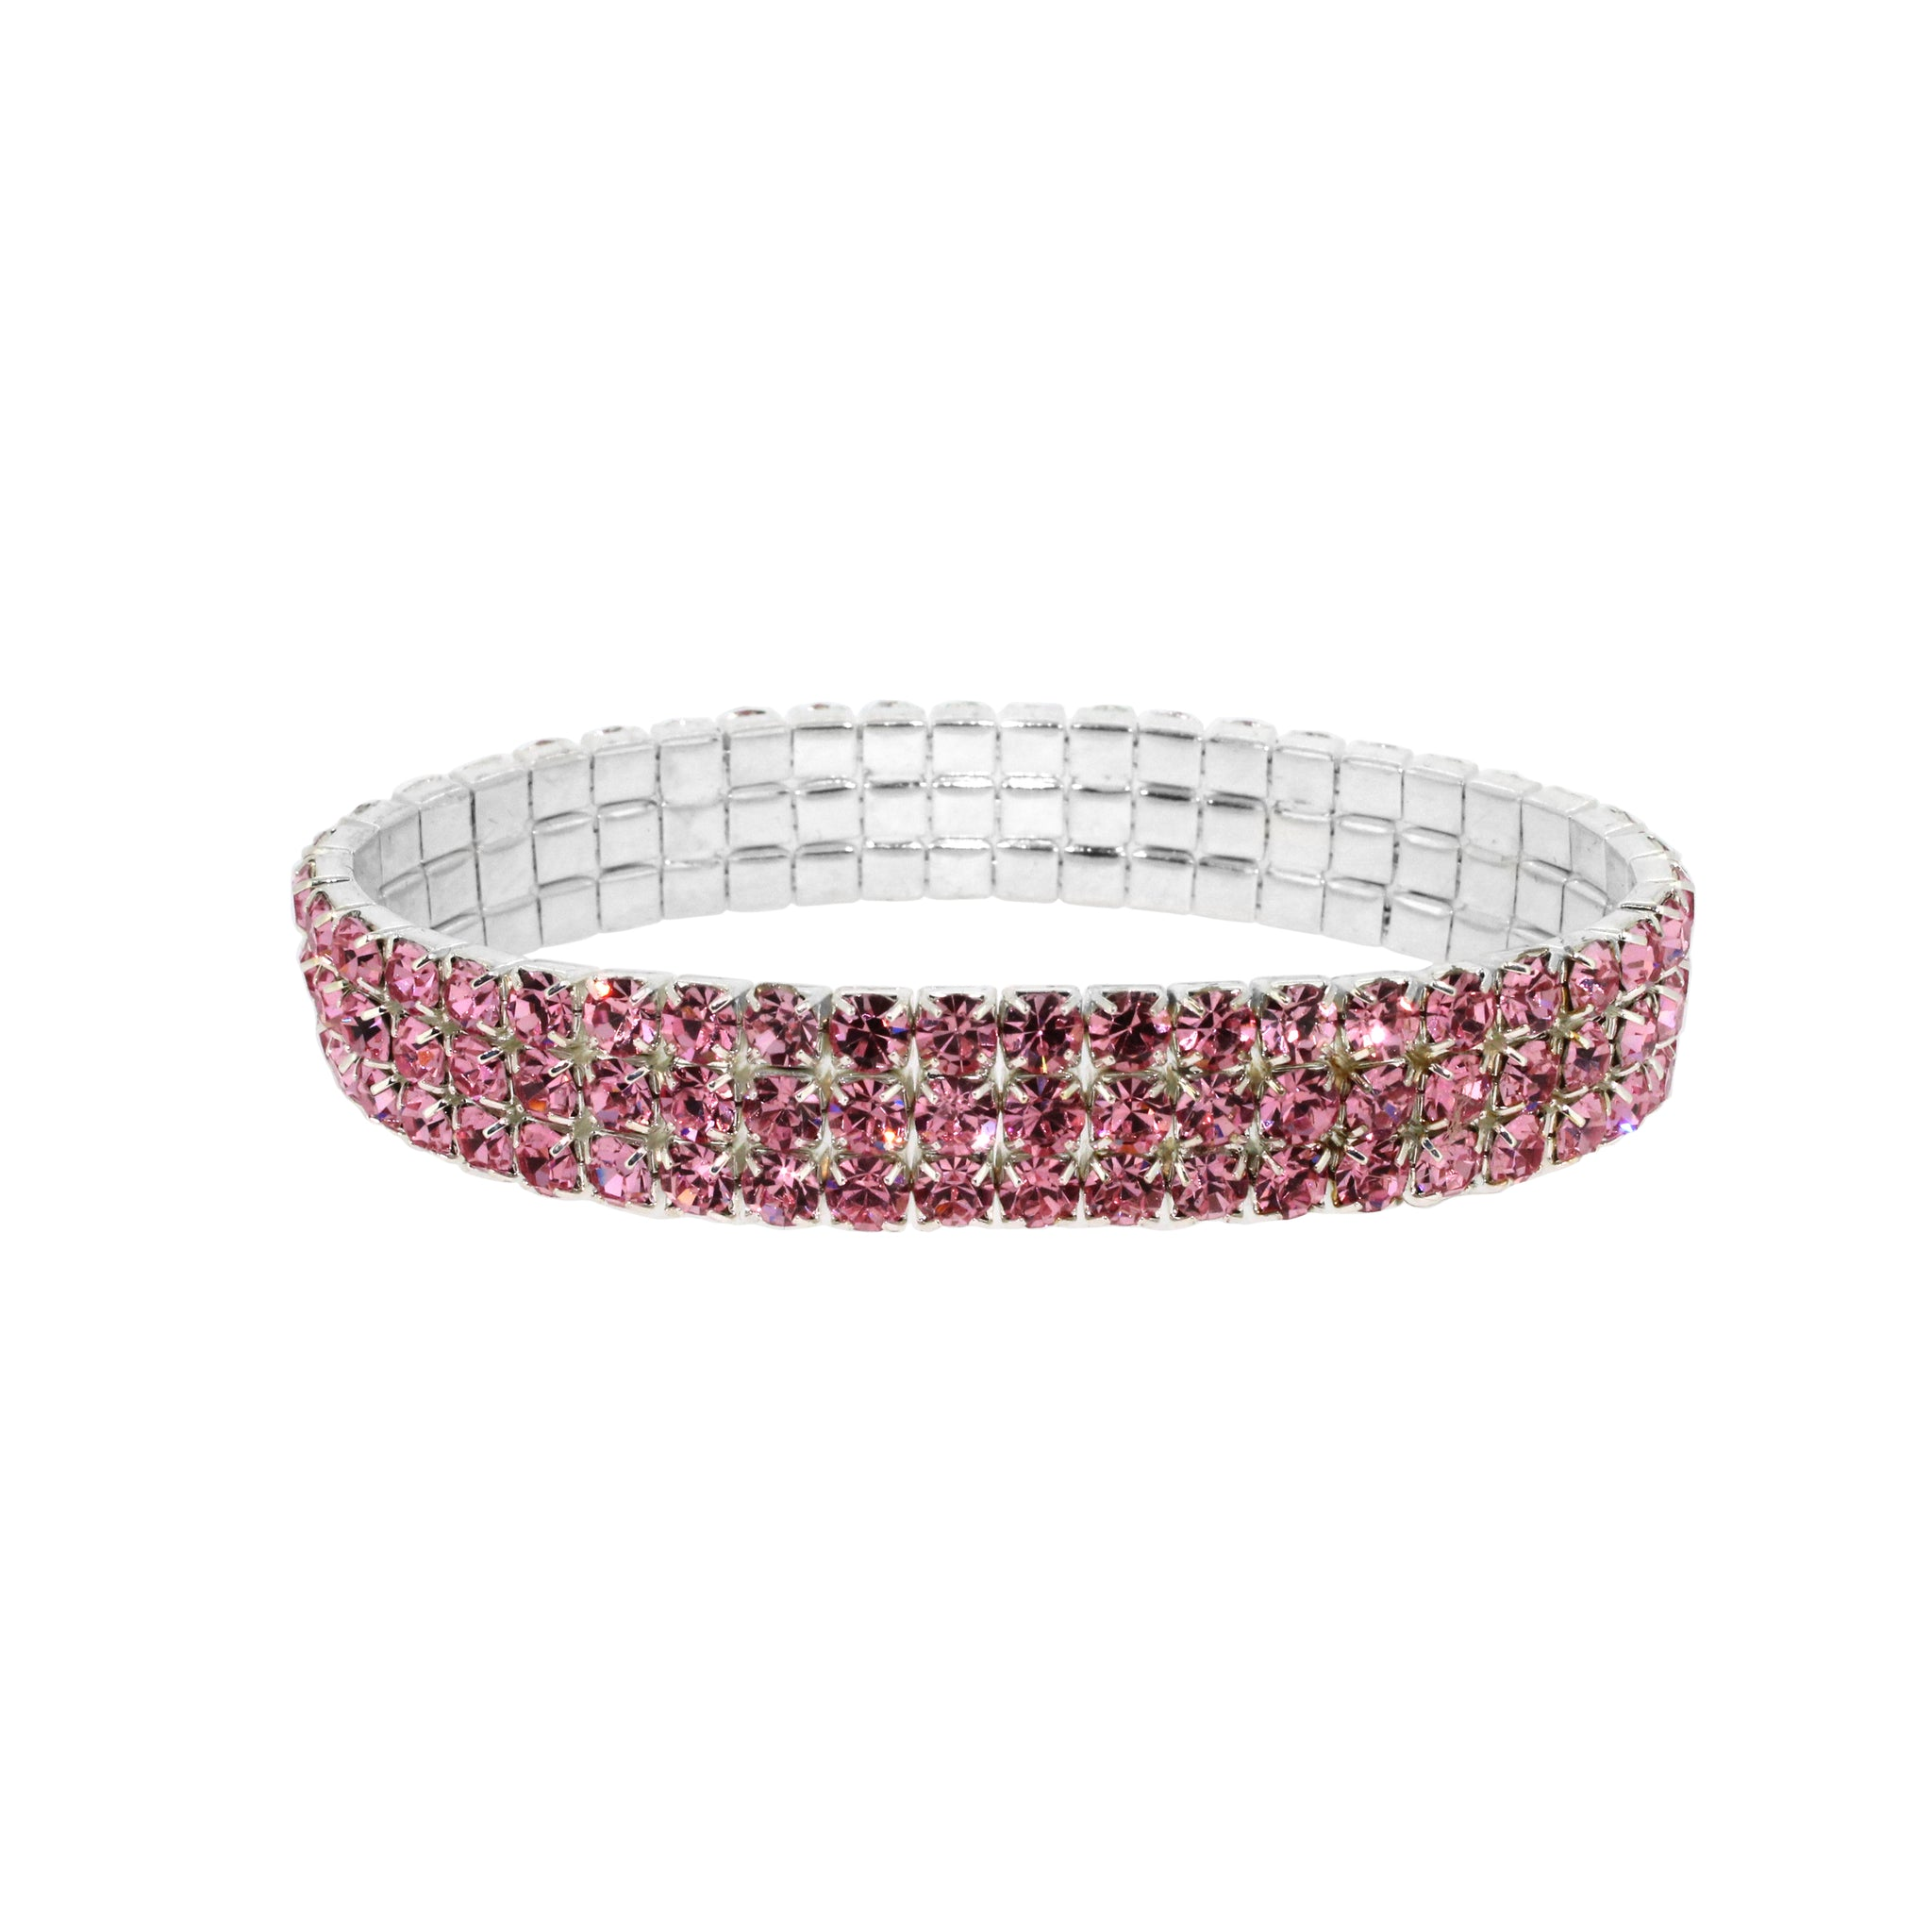 Hollywood Glamour Pink Diamante Stretch Bracelet